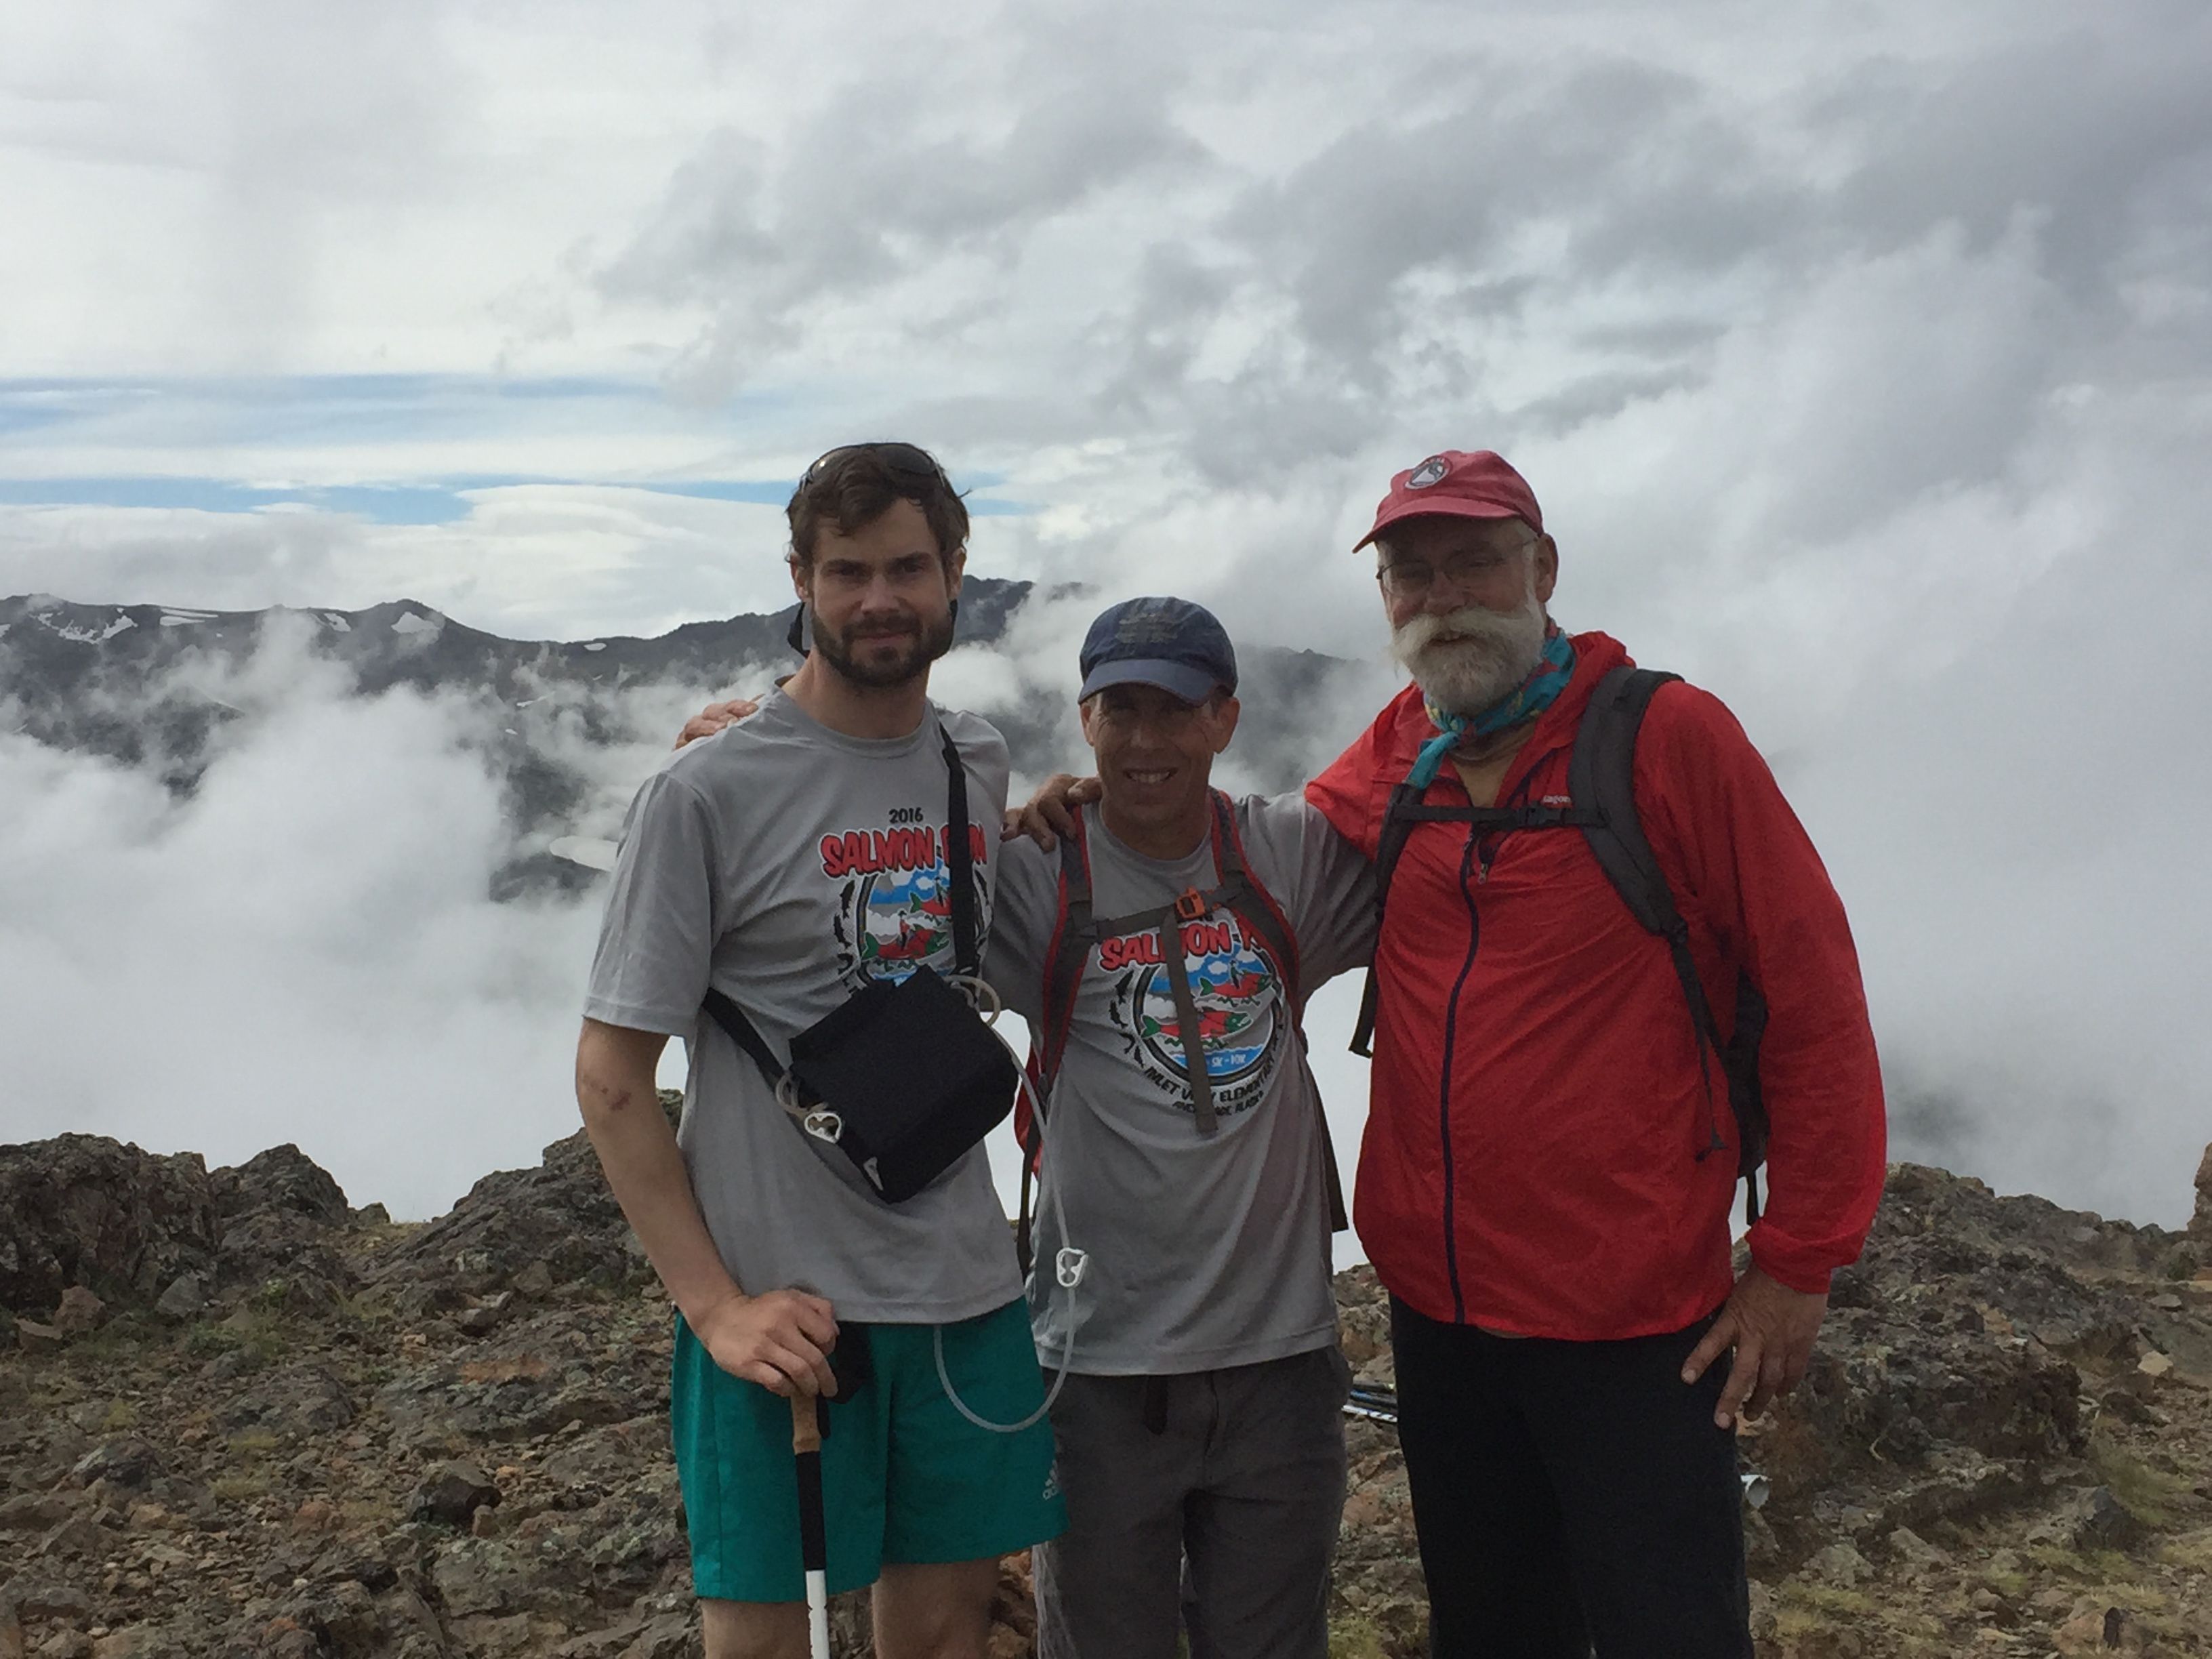 Forest Wagner, Andy Sterns, and Forest's father Joe Wagner pose for a photo while climbing Flat Top near Anchorage, June 25, 2016. (Photo courtesy Forest Wagner)